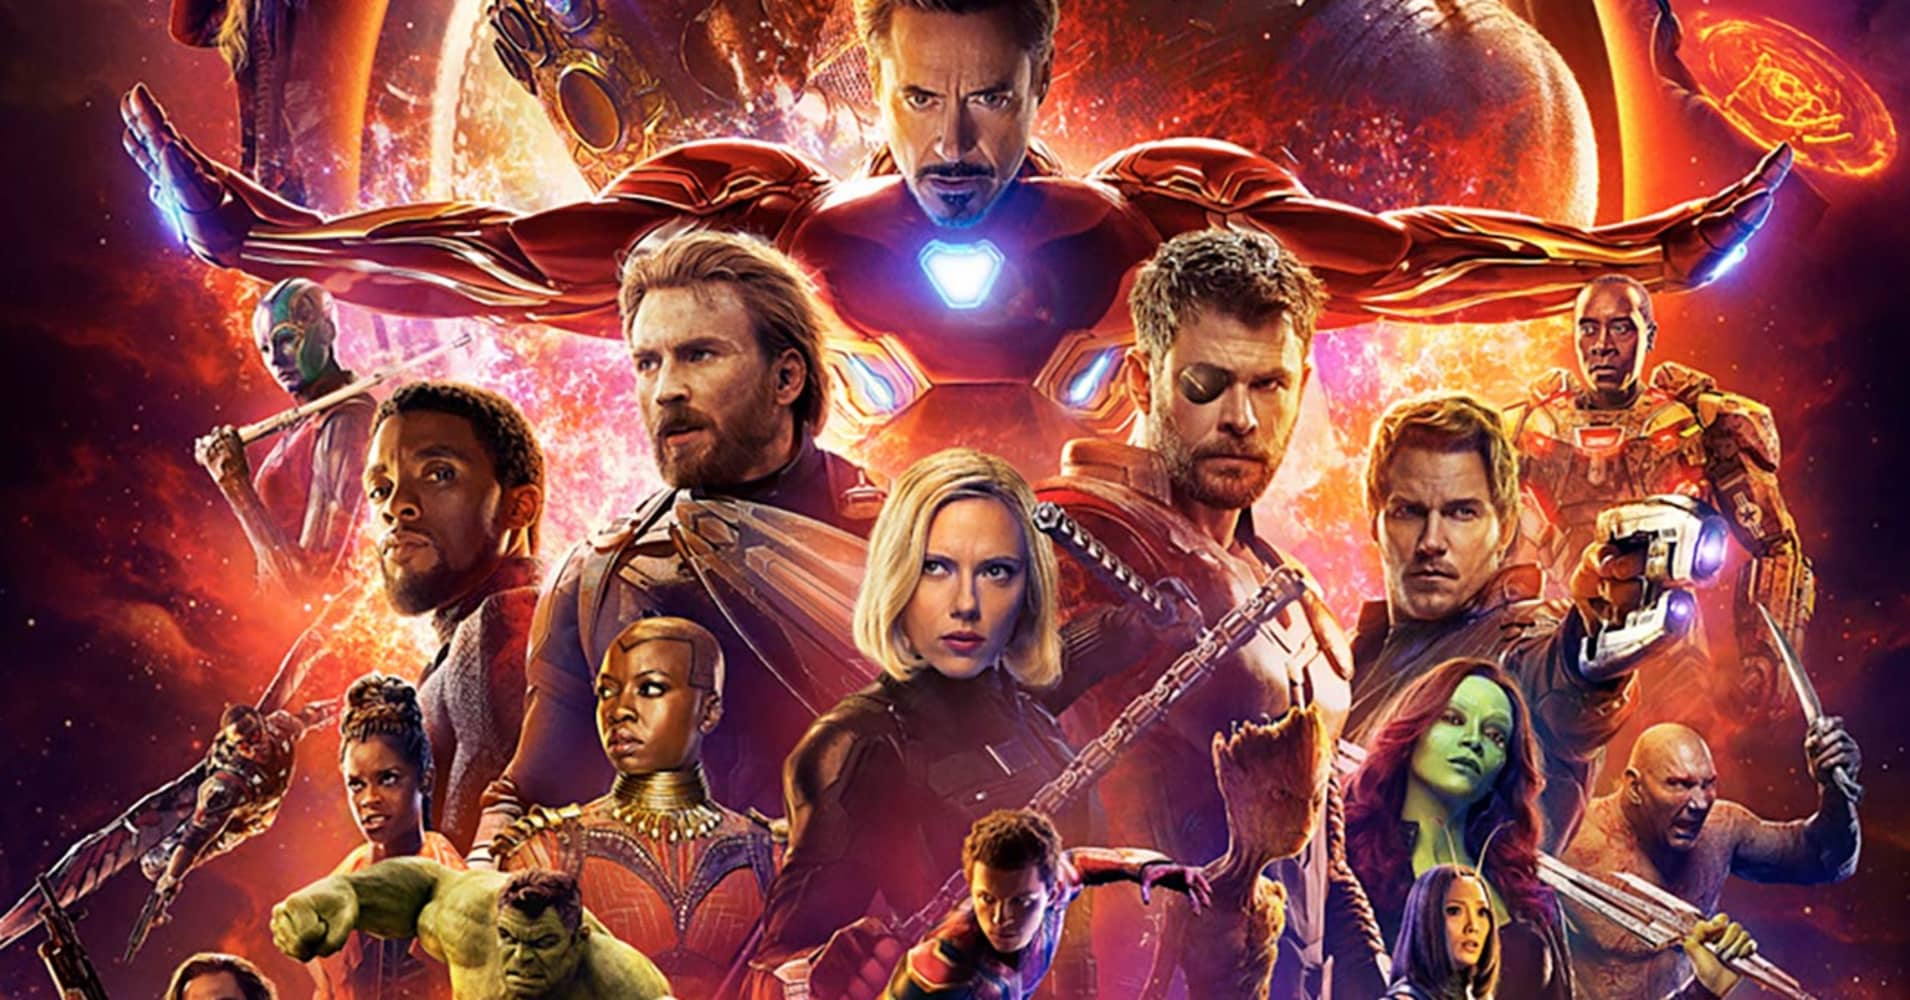 Disney Marvel And Star Wars Franchises Only One Has A Clear Future